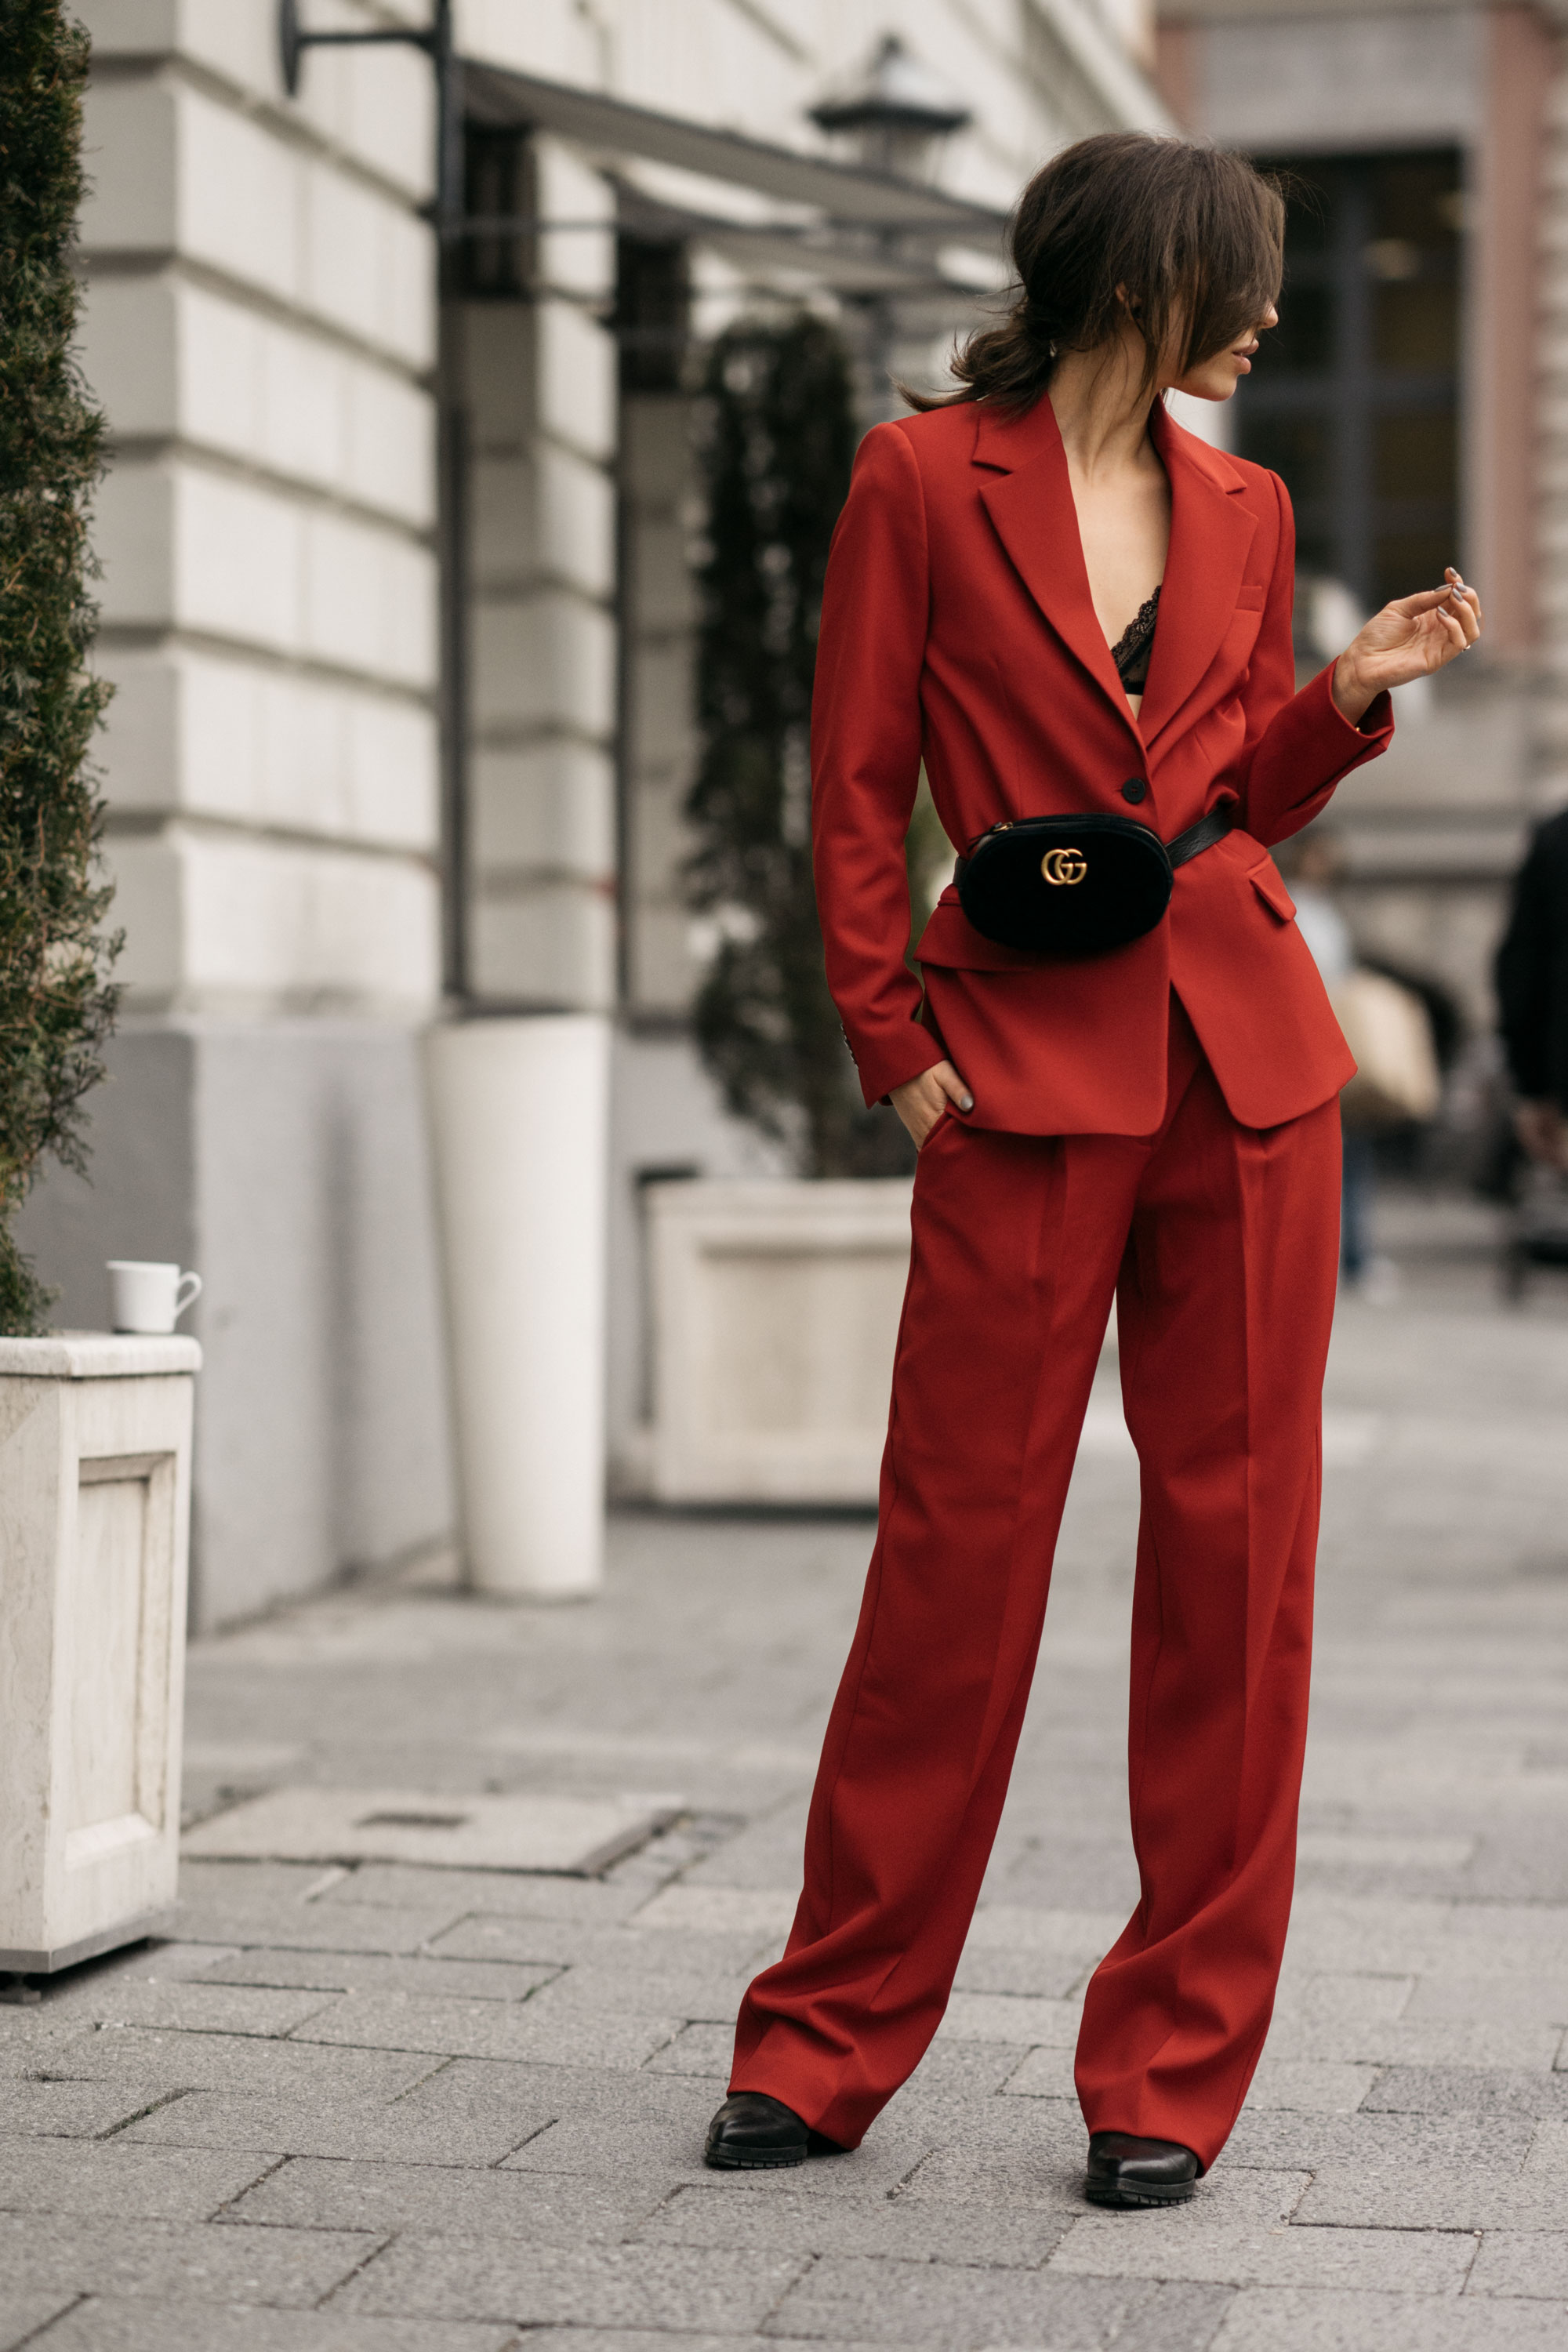 Street Style in Berlin | AW17 | Outfit | Fashion | red two piece: Mango | belt bag / fanny pack: Gucci | Girlboss | elegant, chic, office, bossy, sexy | Autumn | Winter | Prada Ribbon Tasche